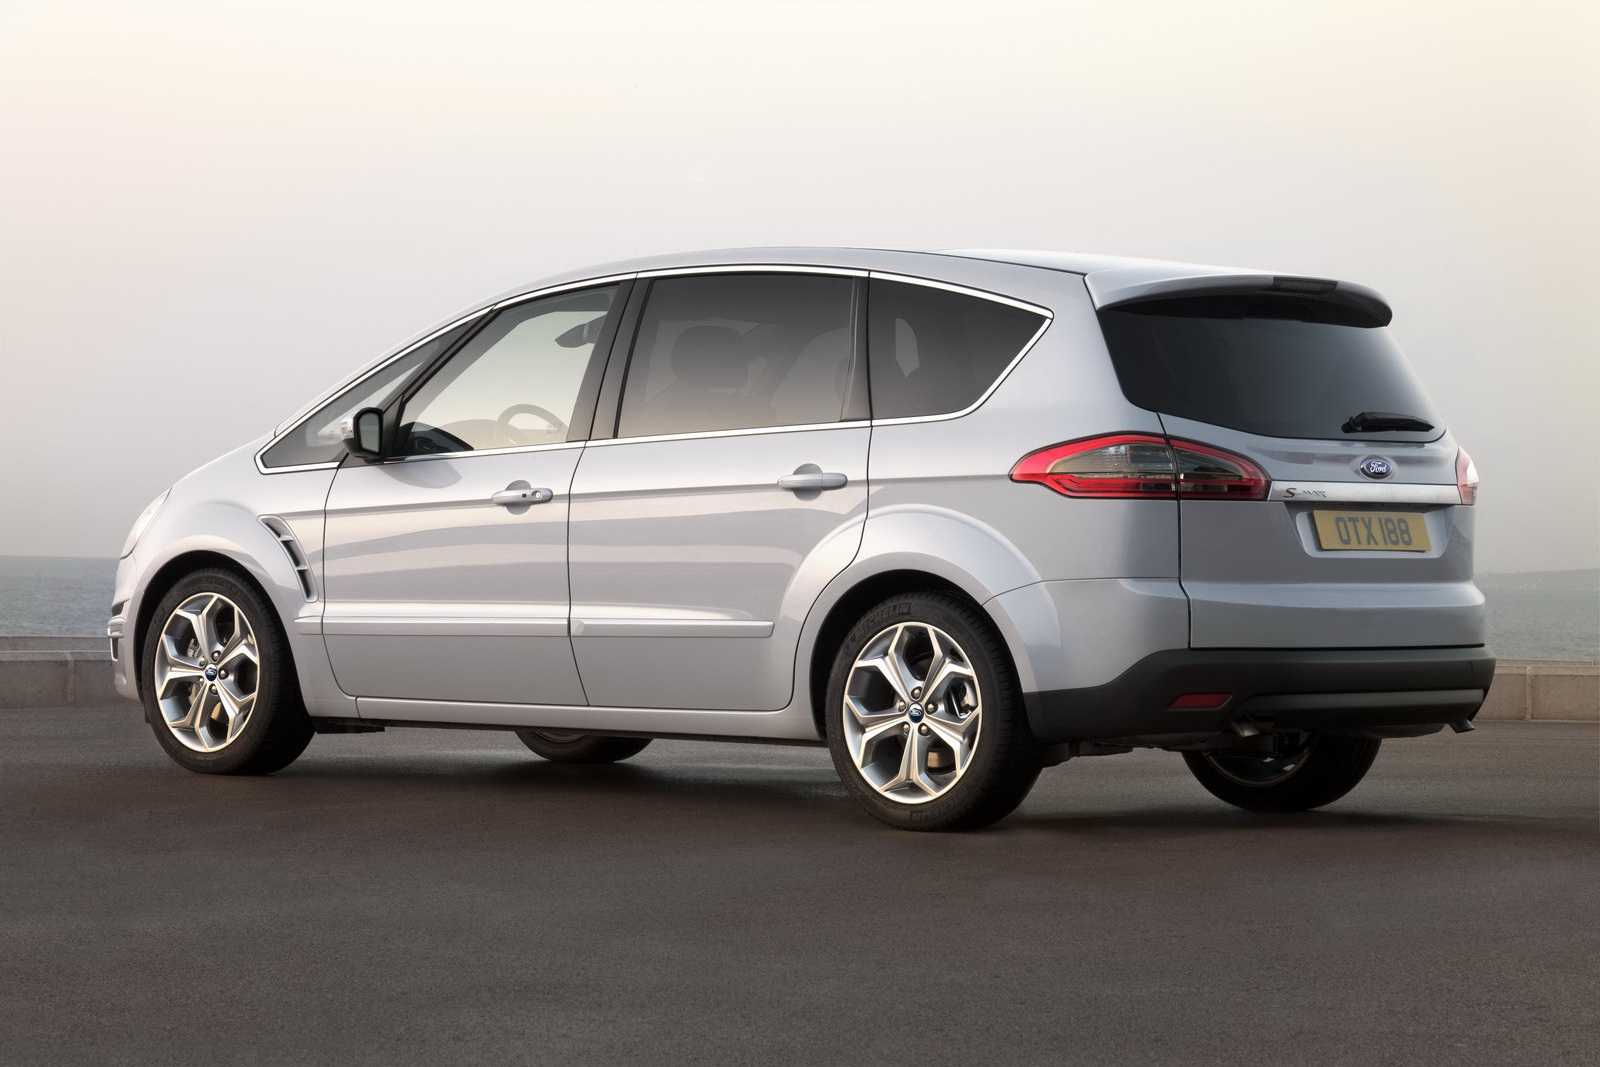 Ford S-max 2010 photo - 10